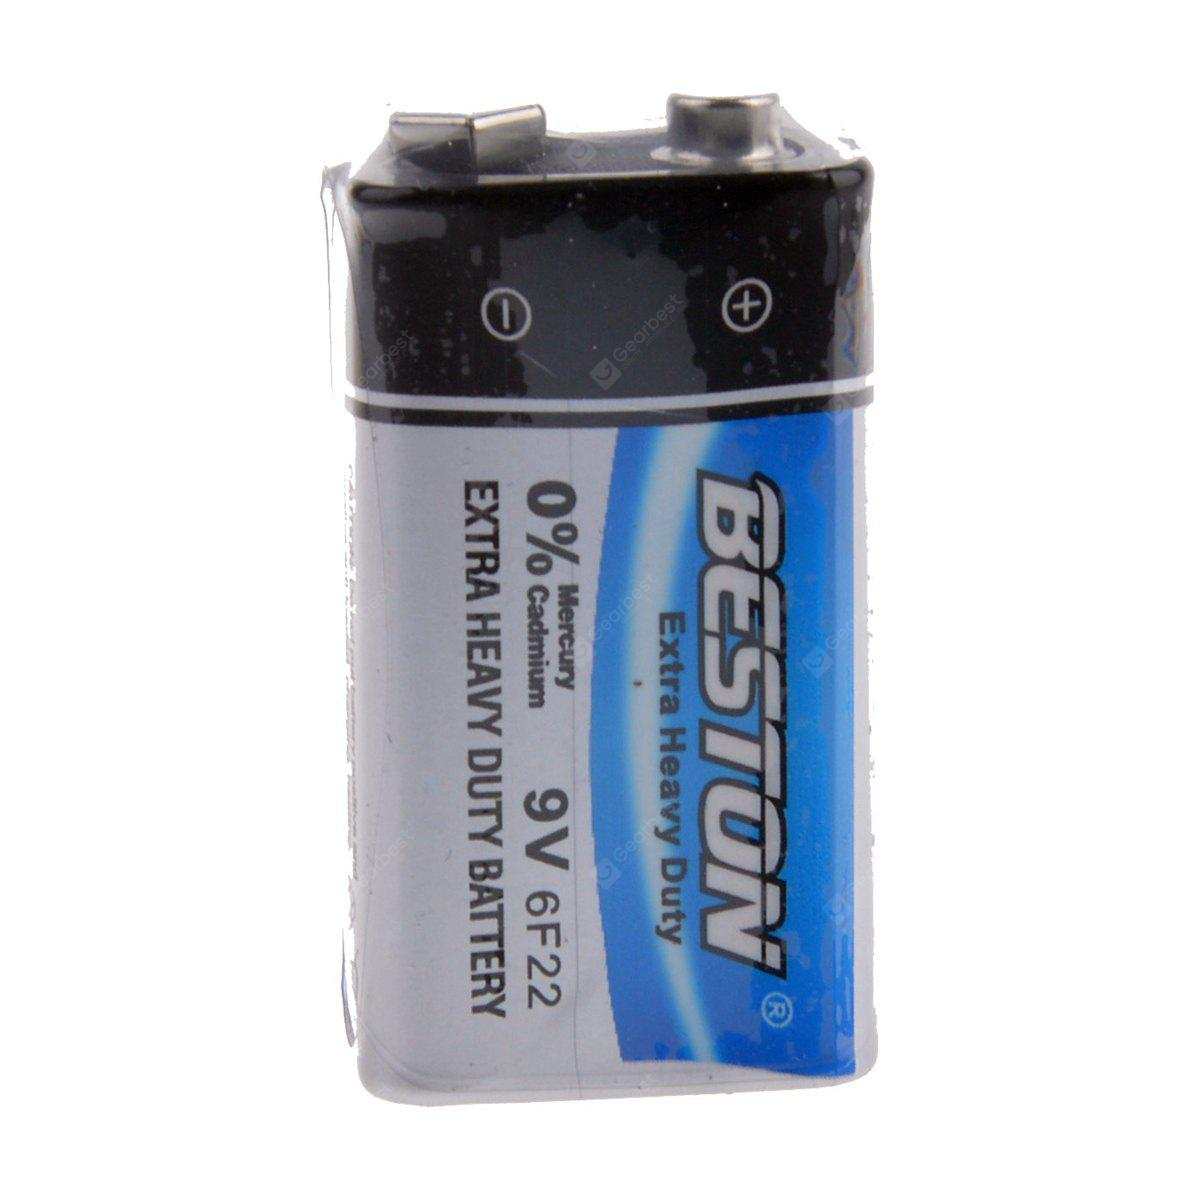 Beston 6f22 9v Extra Heavy Duty Cell Battery For Multimeter 18650 2400mah Rechargeable Liion Batteries W Protection Circuit Microphone 230 Free Shipping